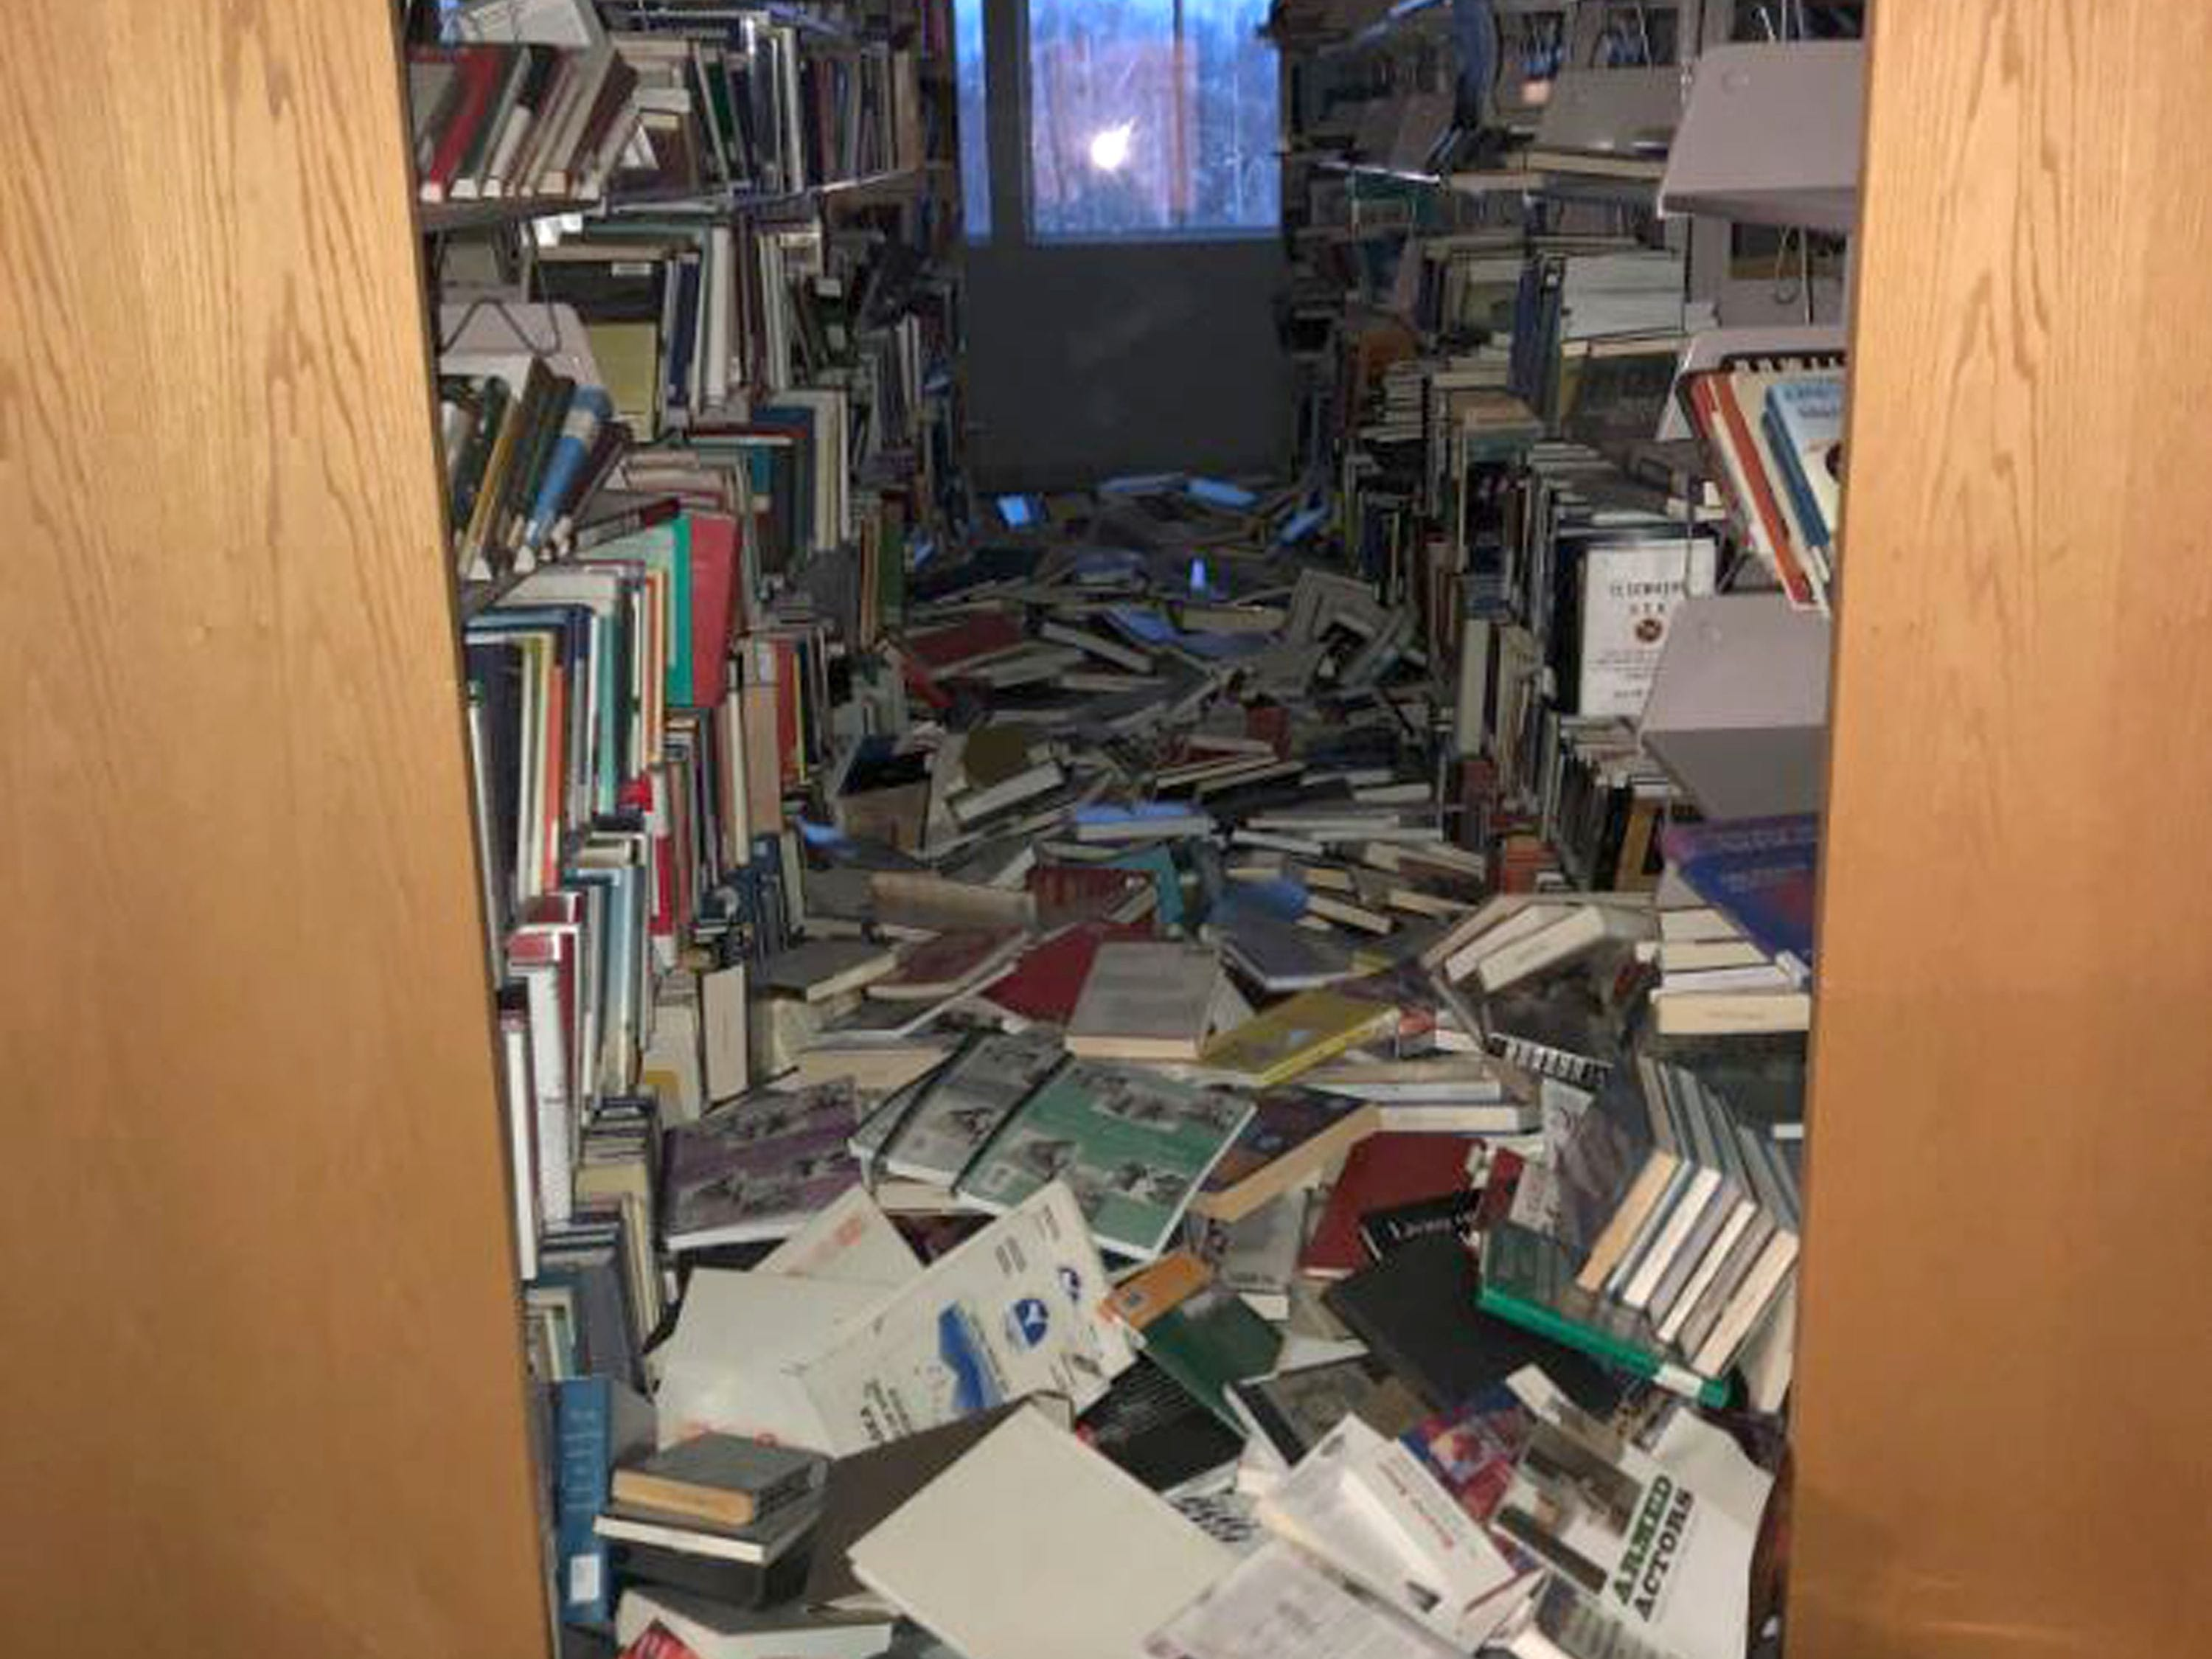 In this image courtesy of Dr. Holly A. Bell, books and ceiling tiles litter the floor at the The Mat-Su College library in Anchorage, Alaska, on Nov. 30, 2018, after a 7.0 magnitude earthquake. The powerful earthquake caused damage to homes and businesses and triggering a tsunami warning. The earthquake was located about eight miles north of Anchorage and struck at 8:29 am local time, the US Geological Survey said.